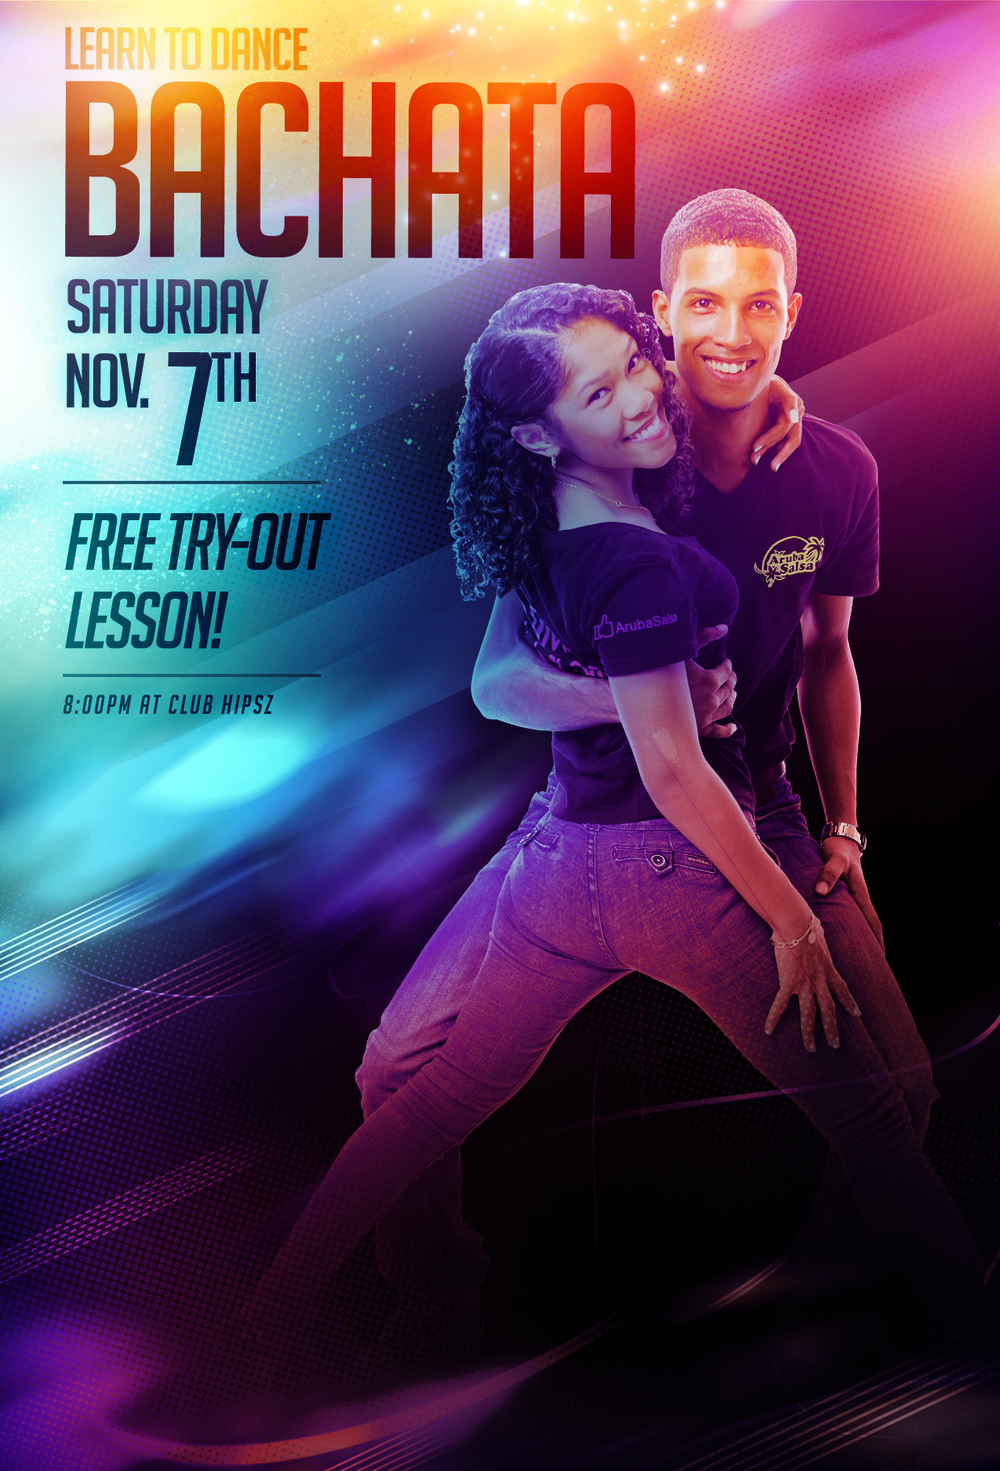 learn bachata flyer.jpg